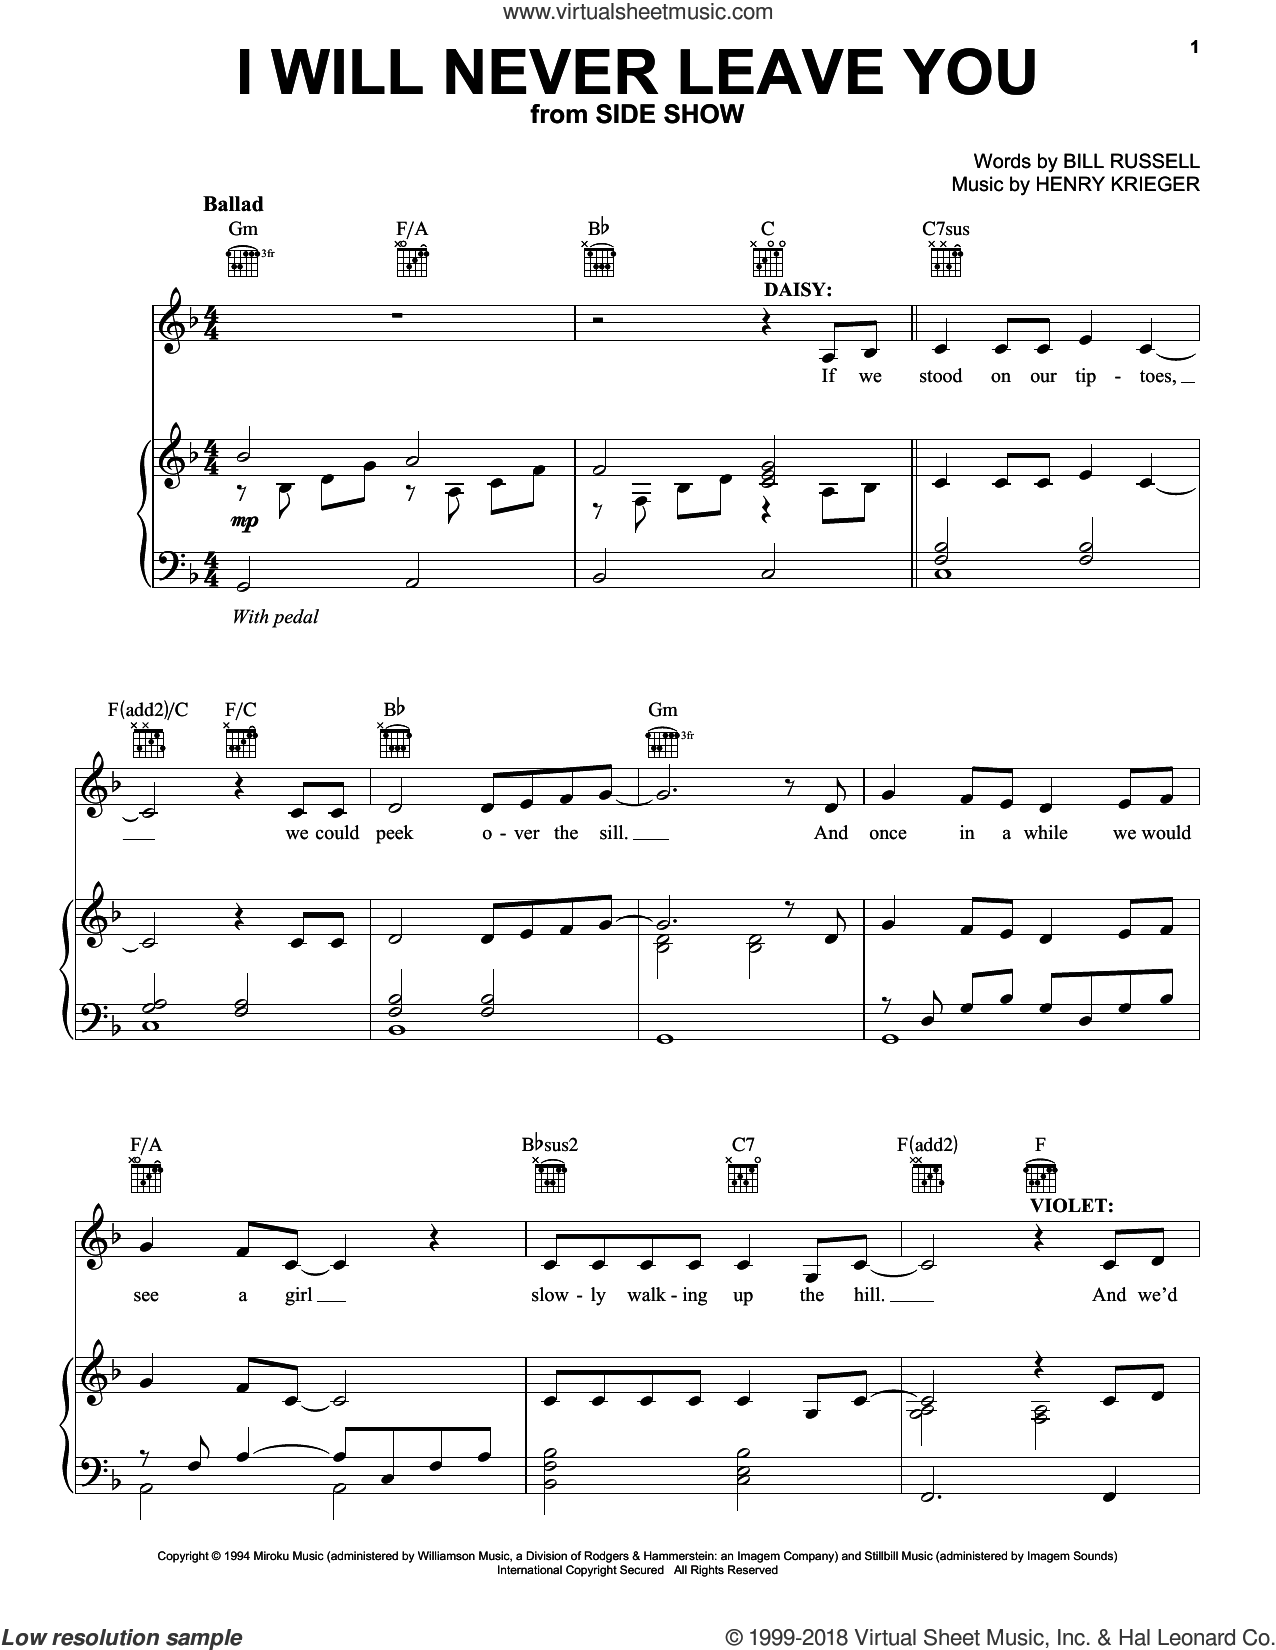 I Will Never Leave You sheet music for voice, piano or guitar by Henry Krieger and Bill Russell, intermediate skill level